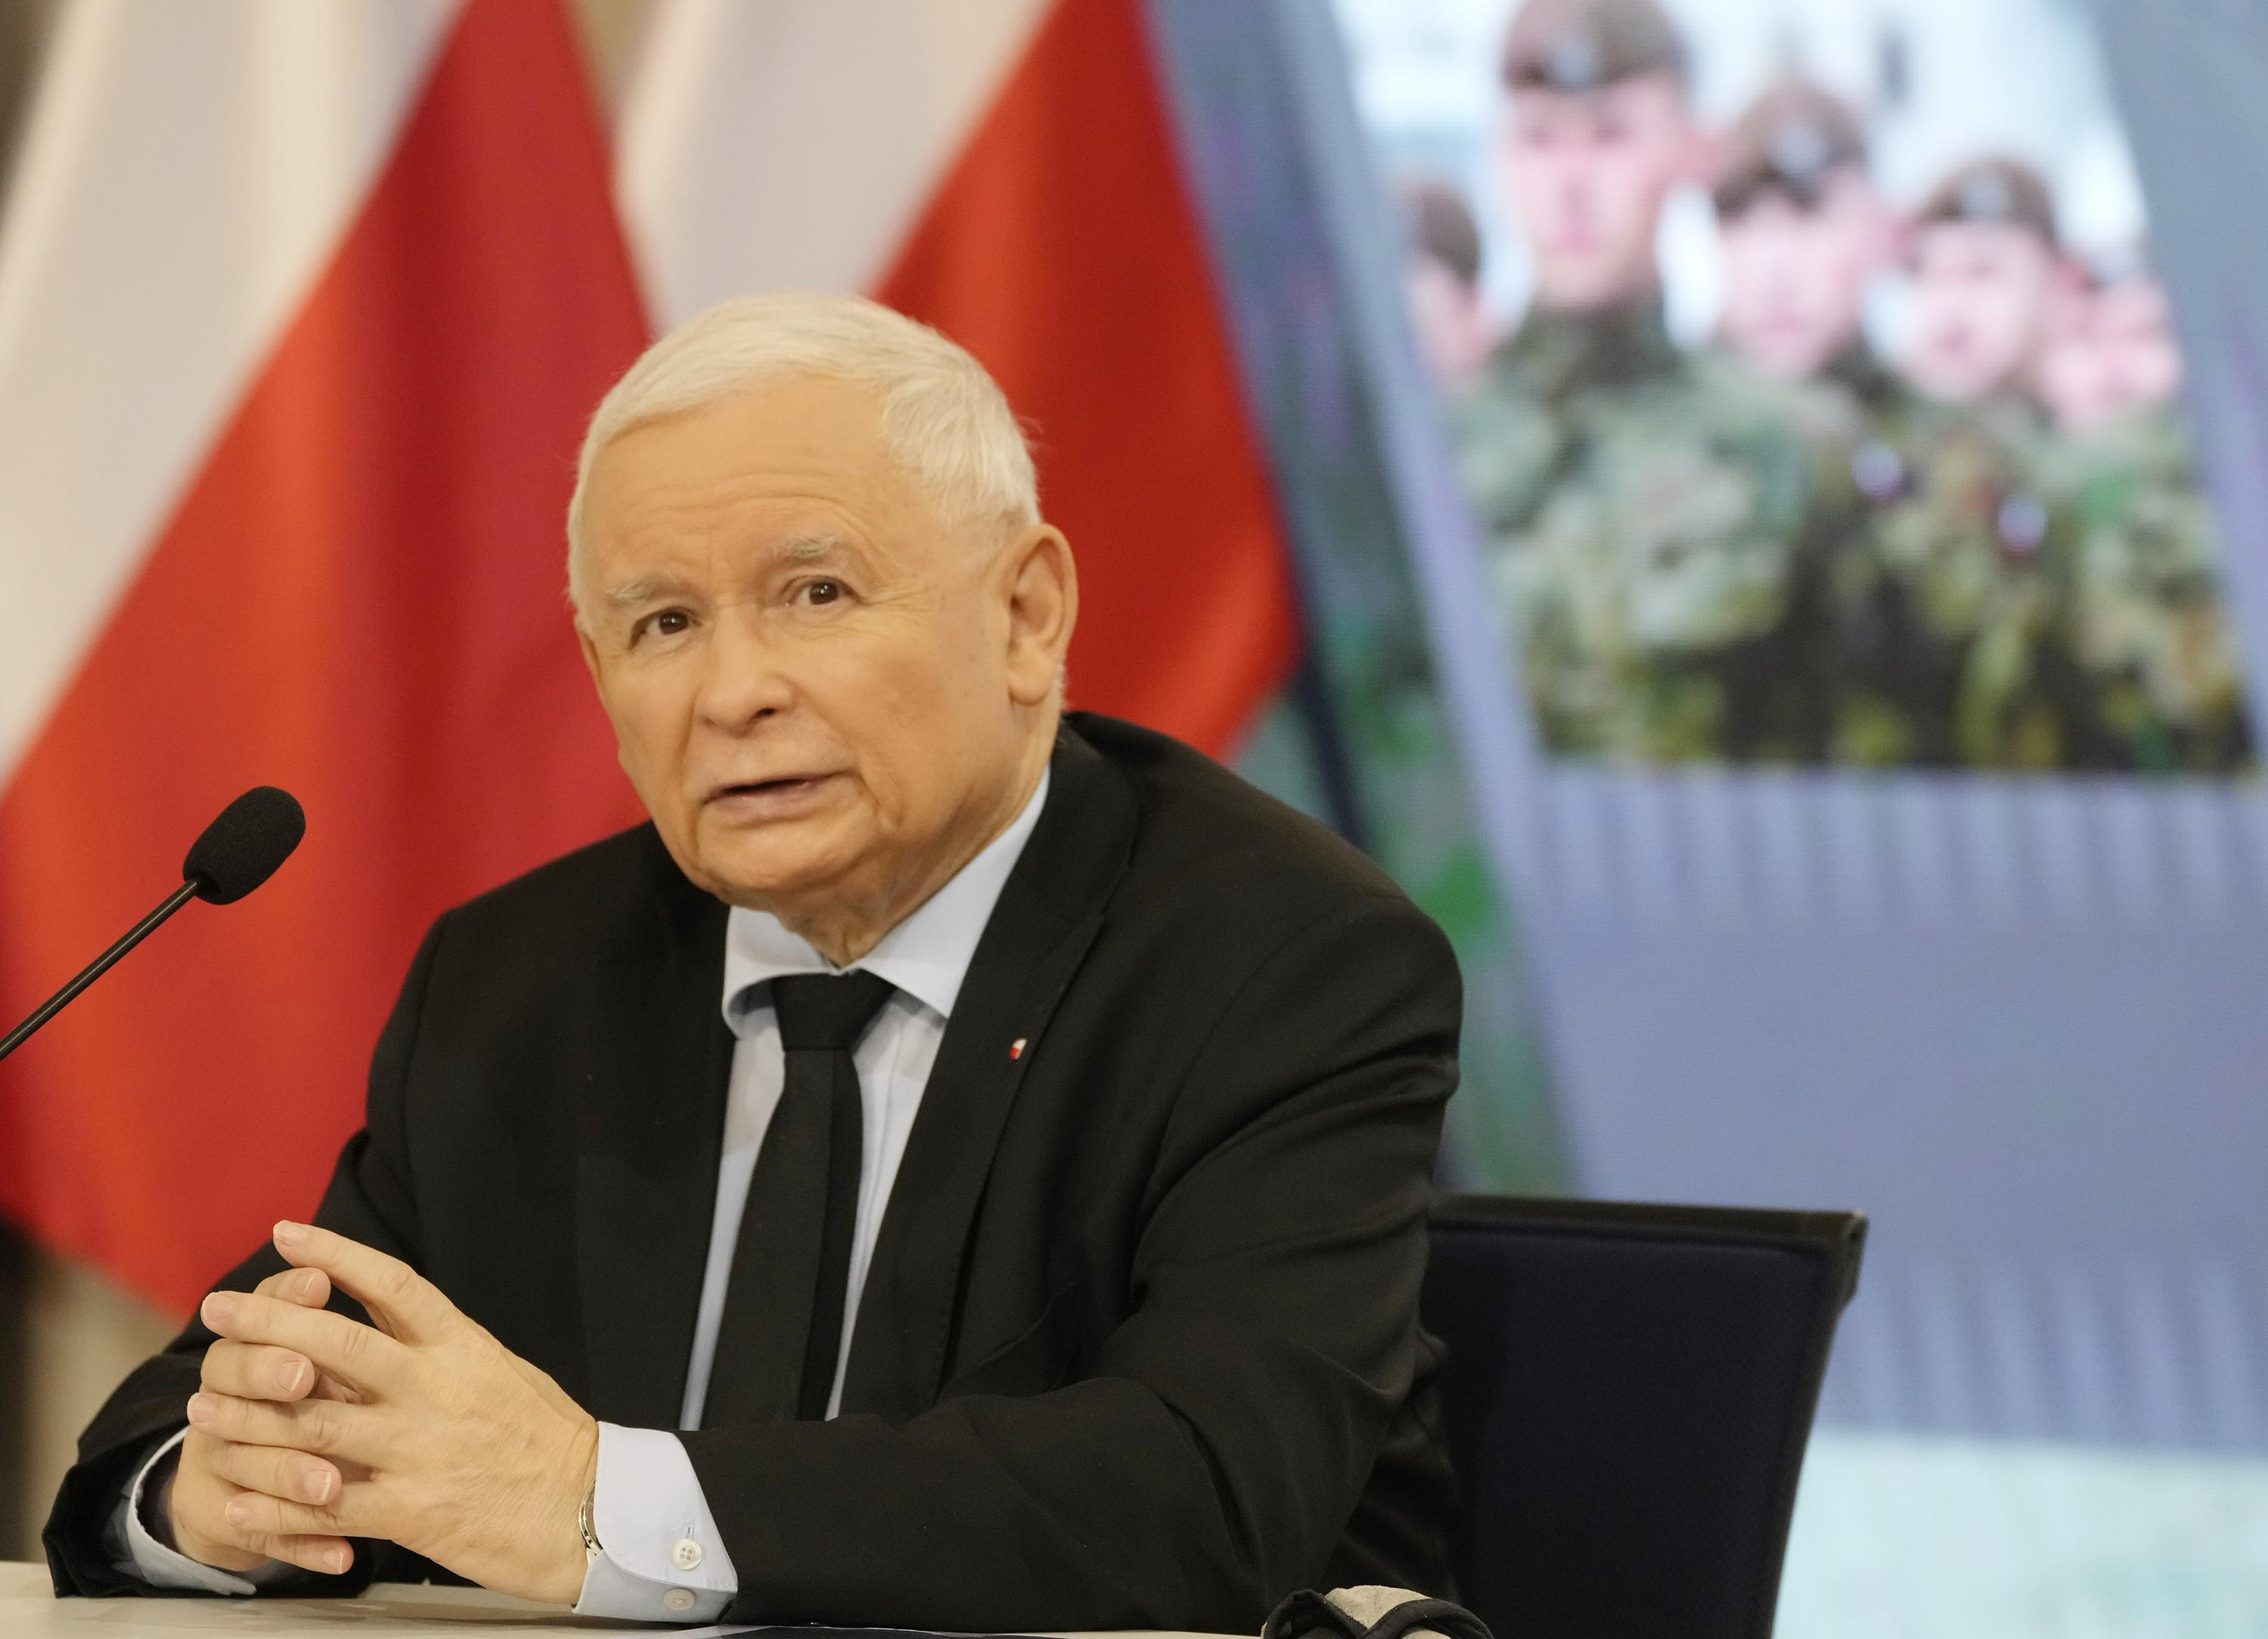 Poland plans 'radical' strengthening of its military